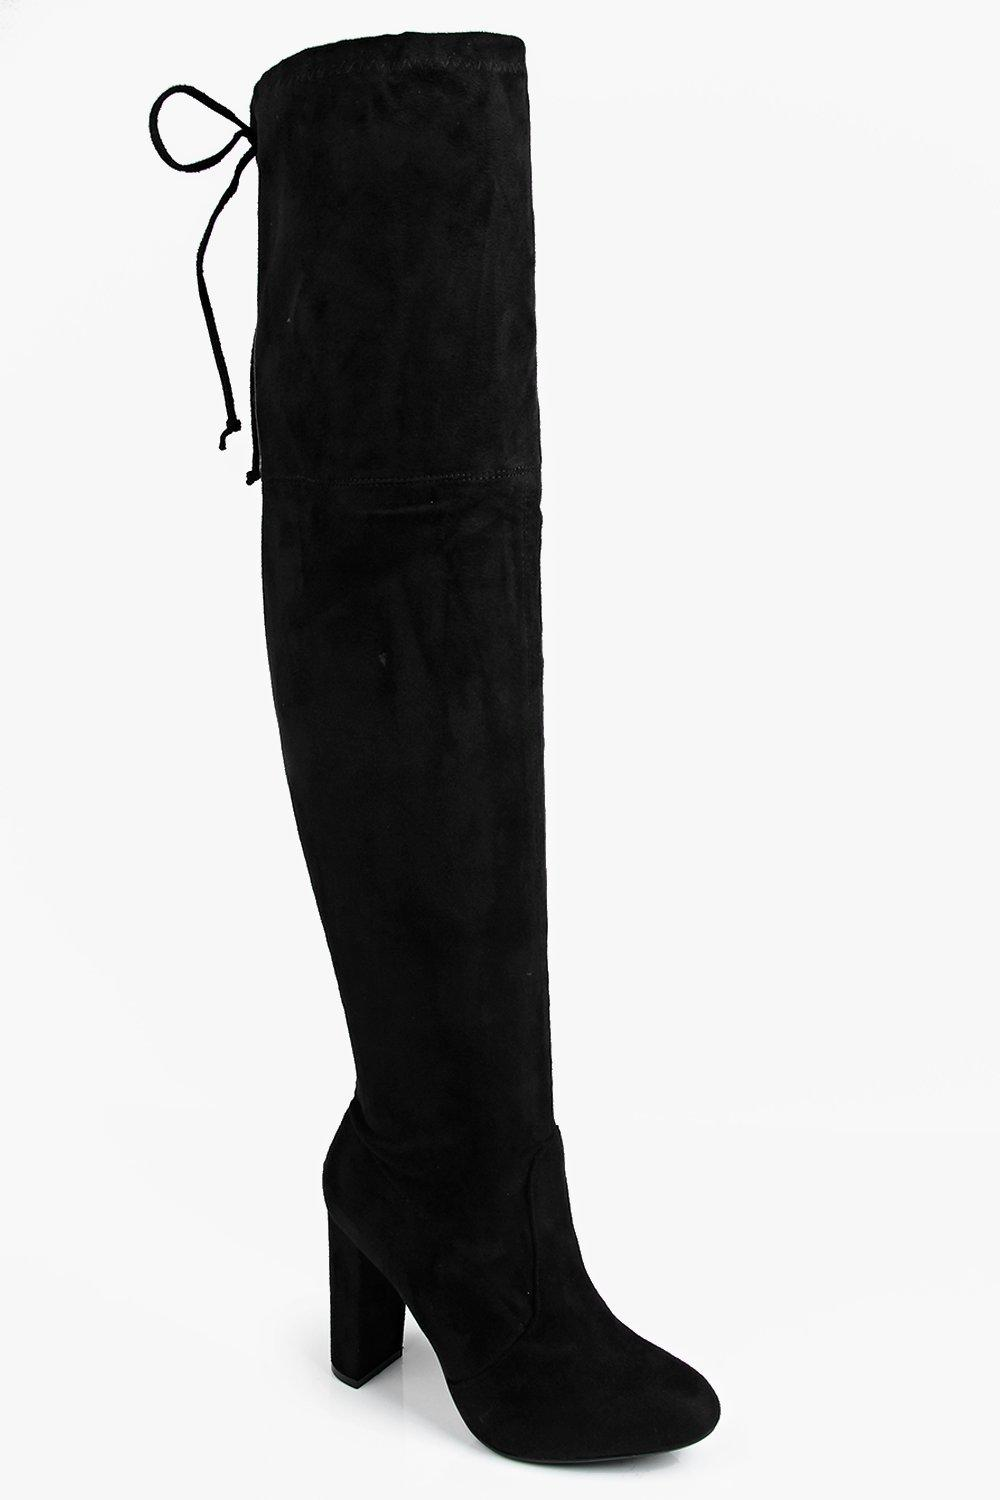 3c5387a28450 Block Heel Lace Up Back Thigh High Boots | Boohoo